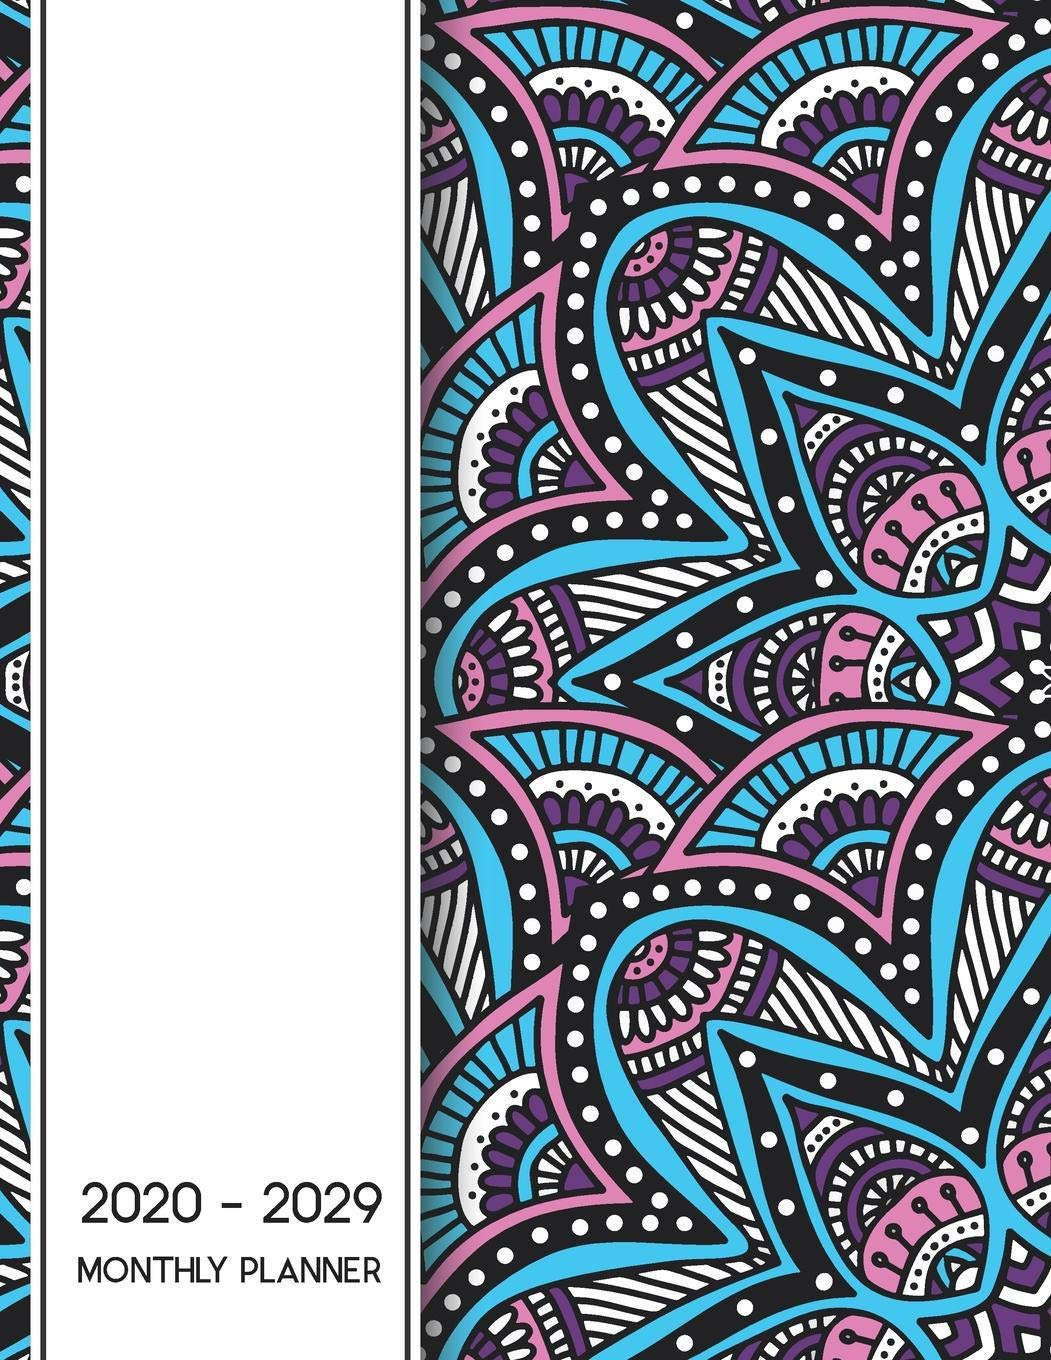 Amazon.com: 2020 - 2029 Monthly Planner: 10 Year Planner ...